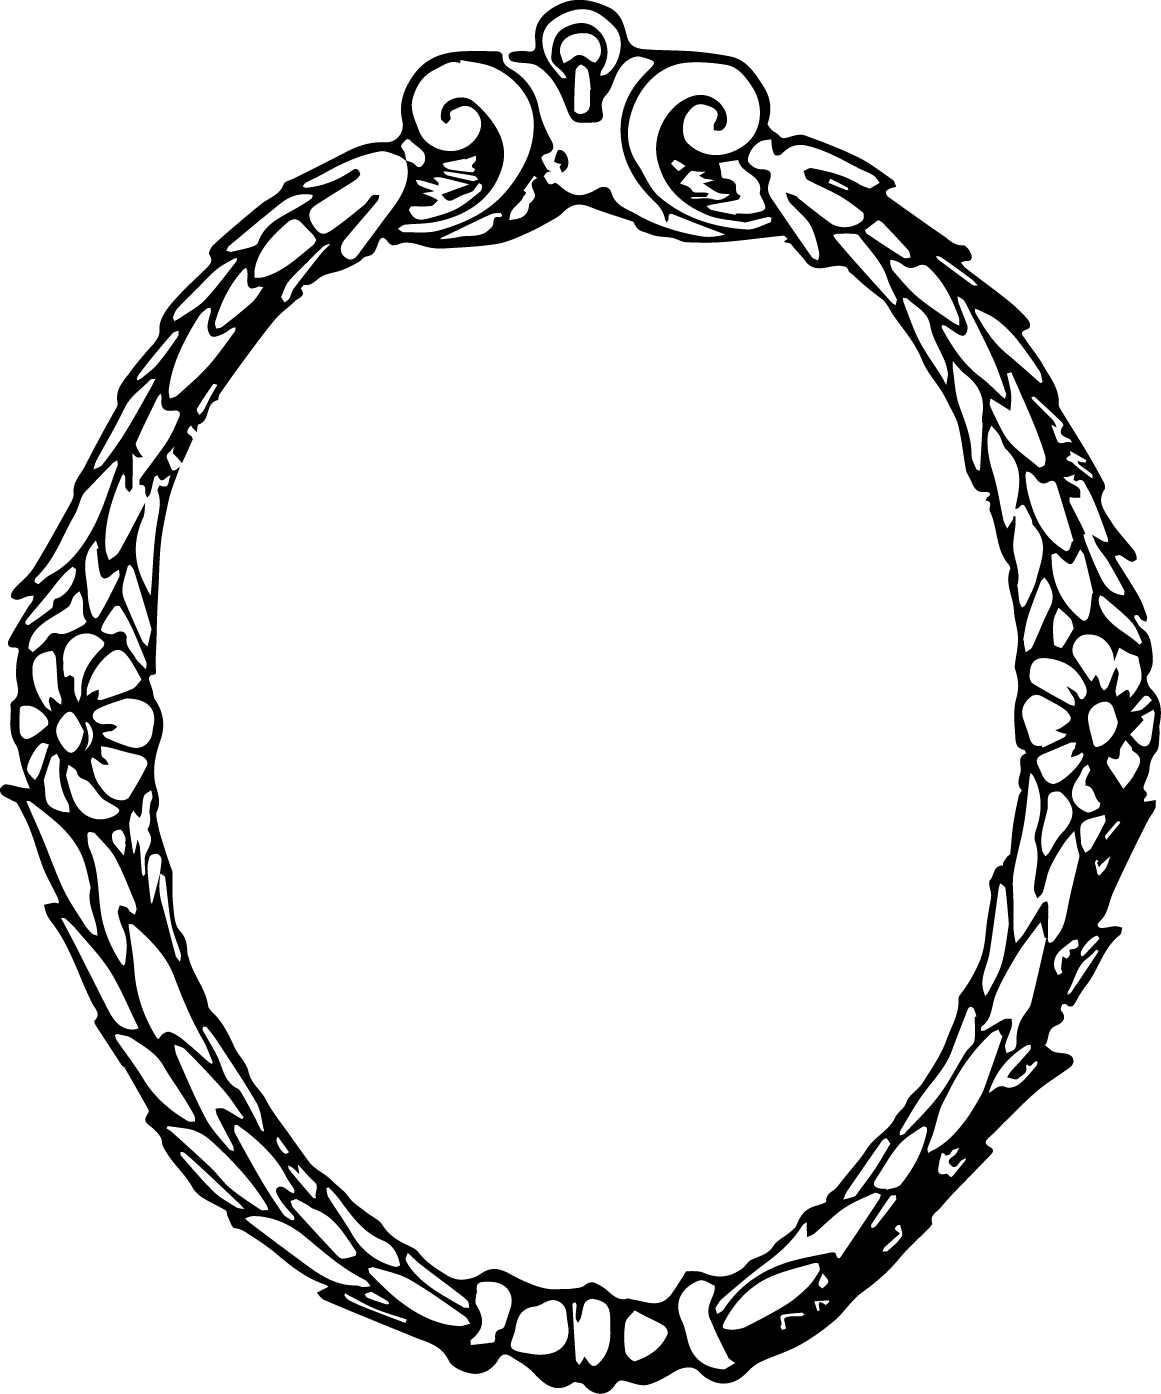 Free Laurel Wreath Svg : laurel, wreath, Laurel, Wreath, Clipart,, Download, Clipart, Library